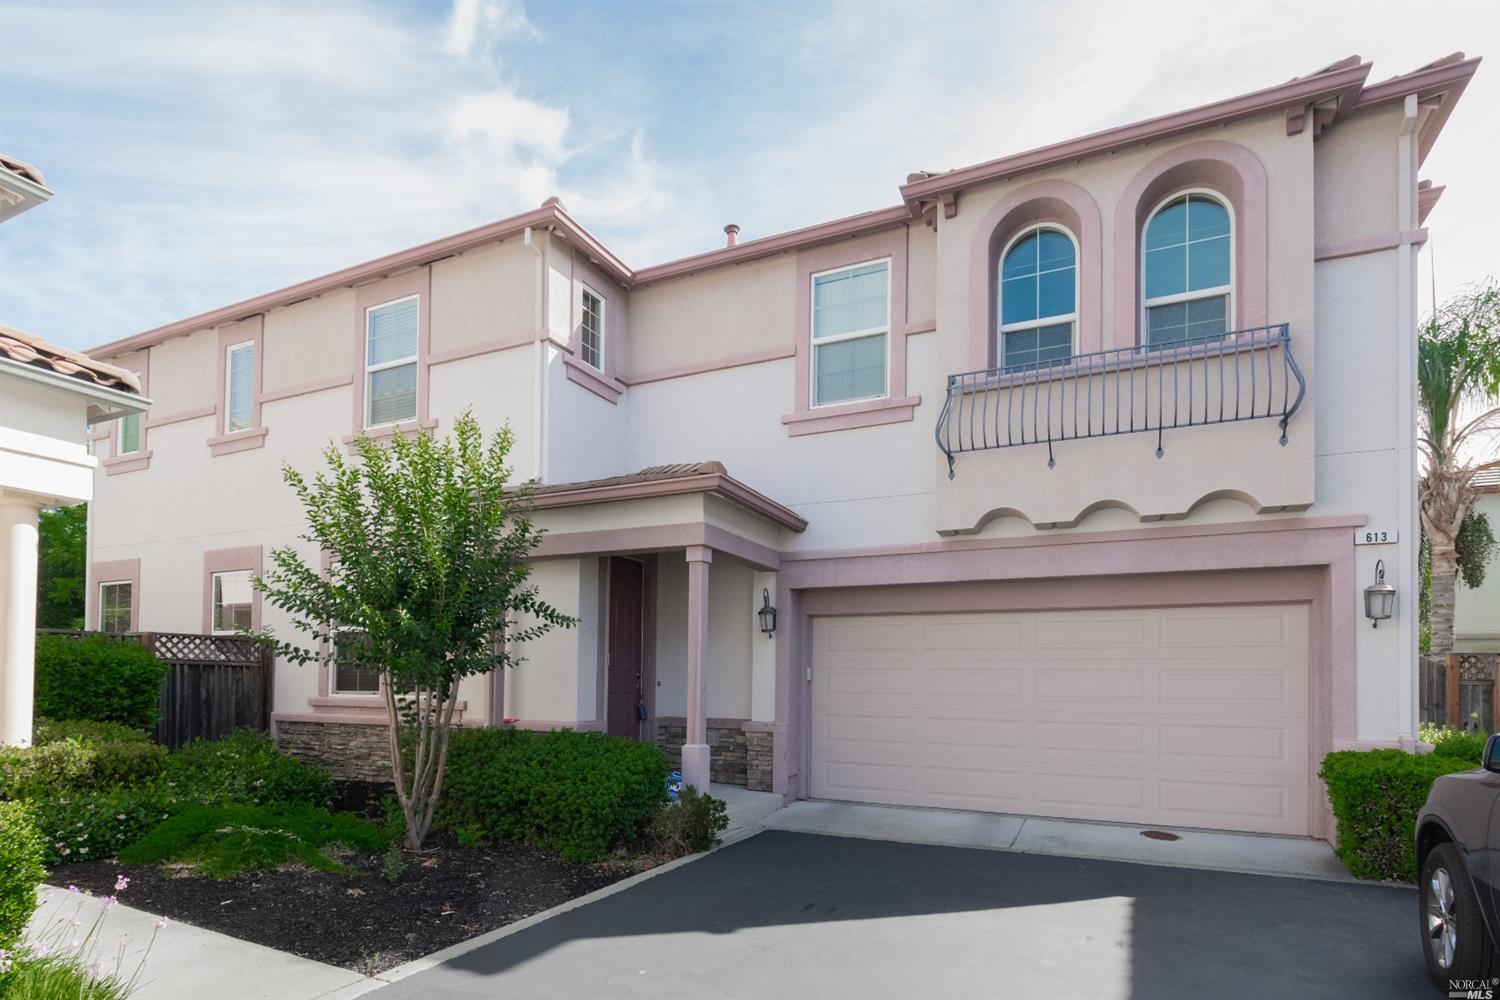 WOW! This Portofino beauty is in move-in condition just waiting for you! Backs to open space.  Gorgeous gourmet kitchen features Travertine tile counters, loads of cabinets & recessed lighting. 20 tile flooring. Huge master bedroom suite w/views! Luxuriate in the master bath soaking tub and enjoy the spacious walk-in closet. 3 more generous sized bedrooms, a hall bath, large linen closet & 2nd story laundry room (Whirlpool washing machine incl) complete the upstairs area. New hot water heater. The sweet backyard area has a beautiful stamped concrete patio. Enjoy the Private park for Portofino Homeowners only. This subdivision is well taken care of & is close to Pena Adobe Park, shopping & downtown Vacaville entertainment. Come see all that